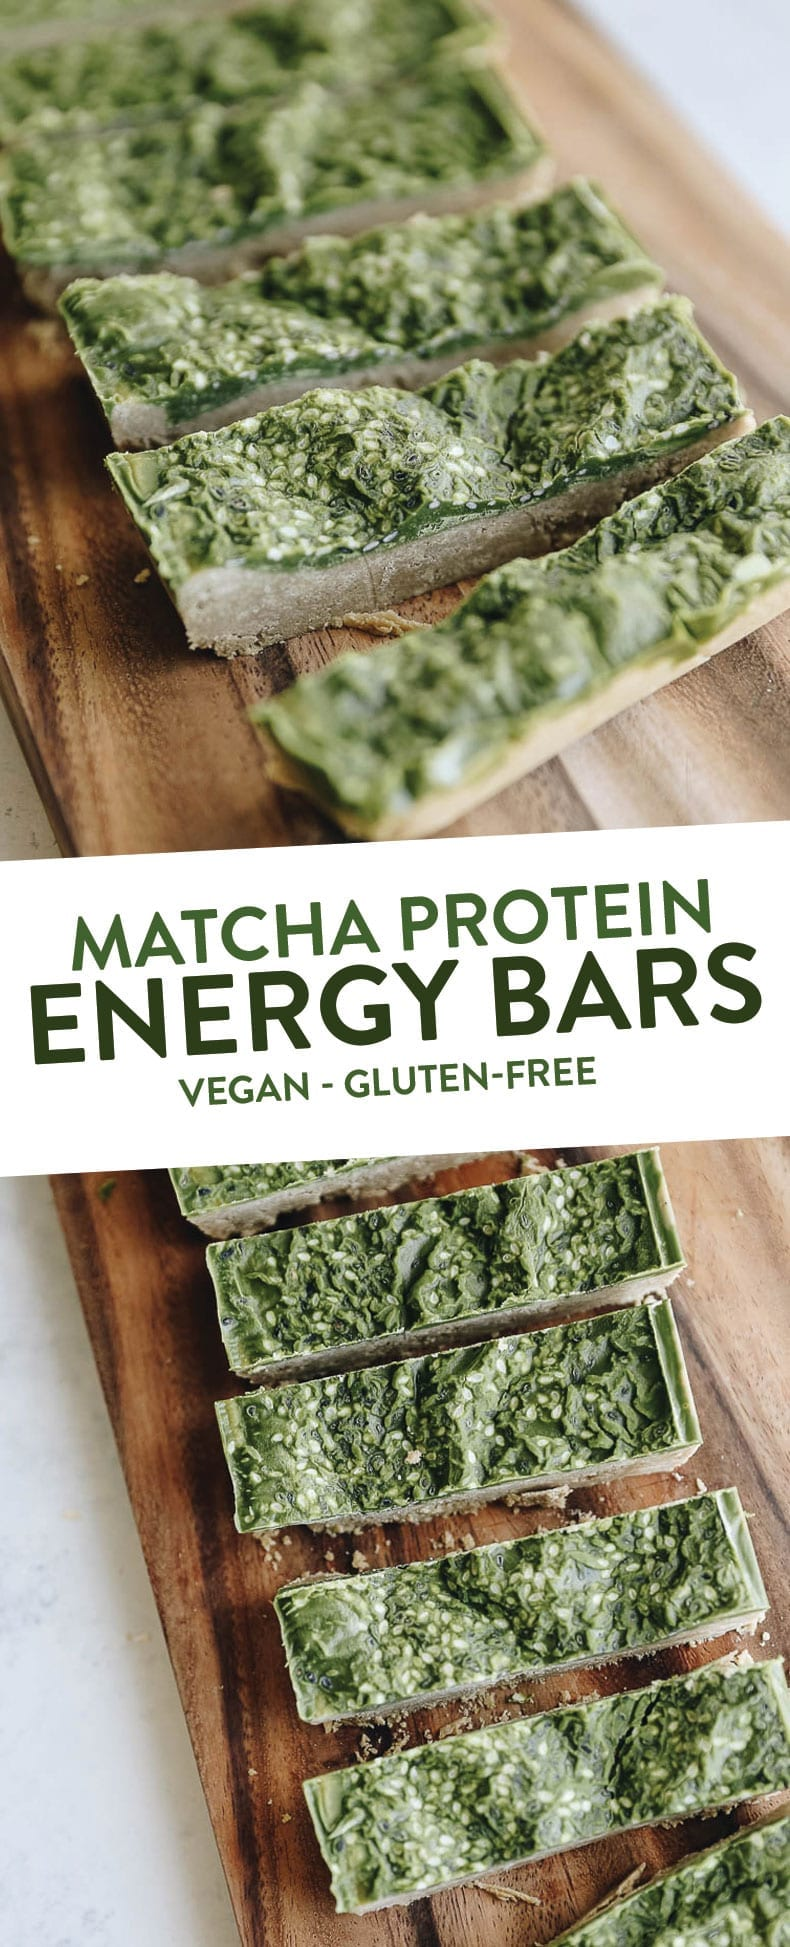 These Matcha Protein Energy Bars are plant-based, gluten-free and made from healthy ingredients. They're the perfect energizing snack for life on the run #vegan #matcha #matchabars